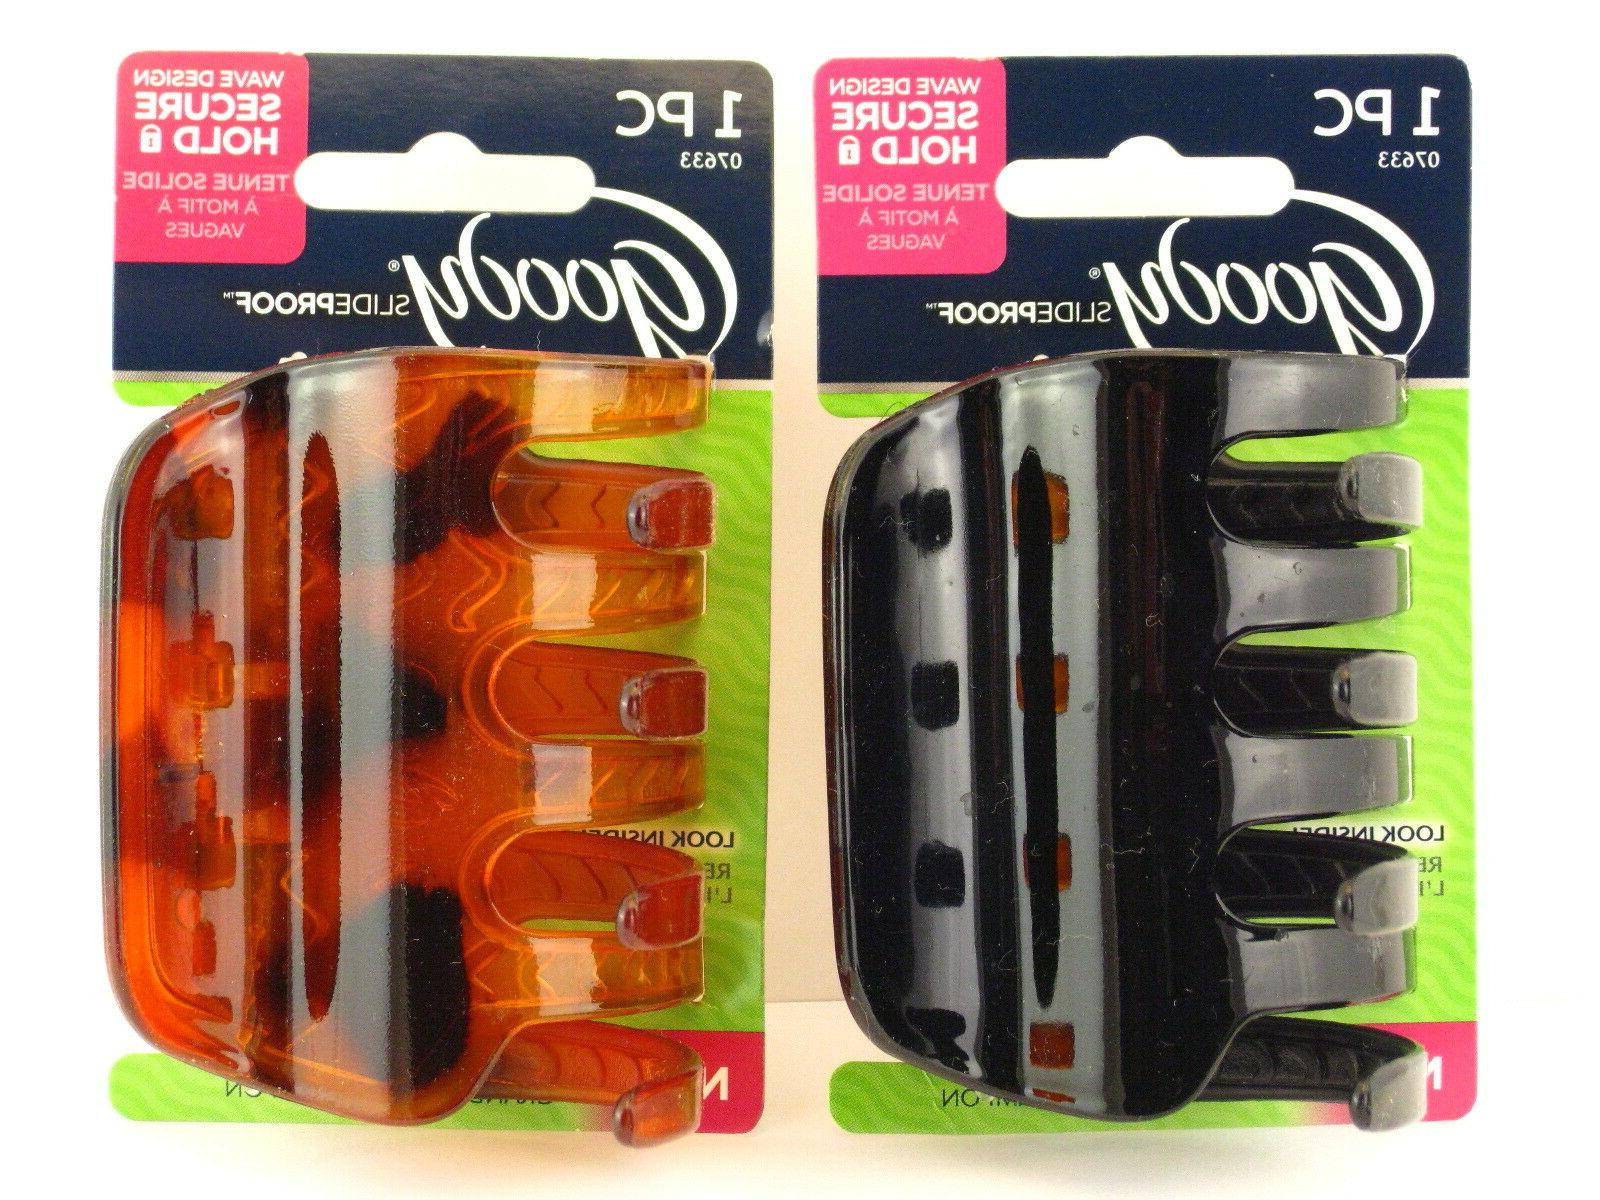 slideproof large claw hair clips 1 pc